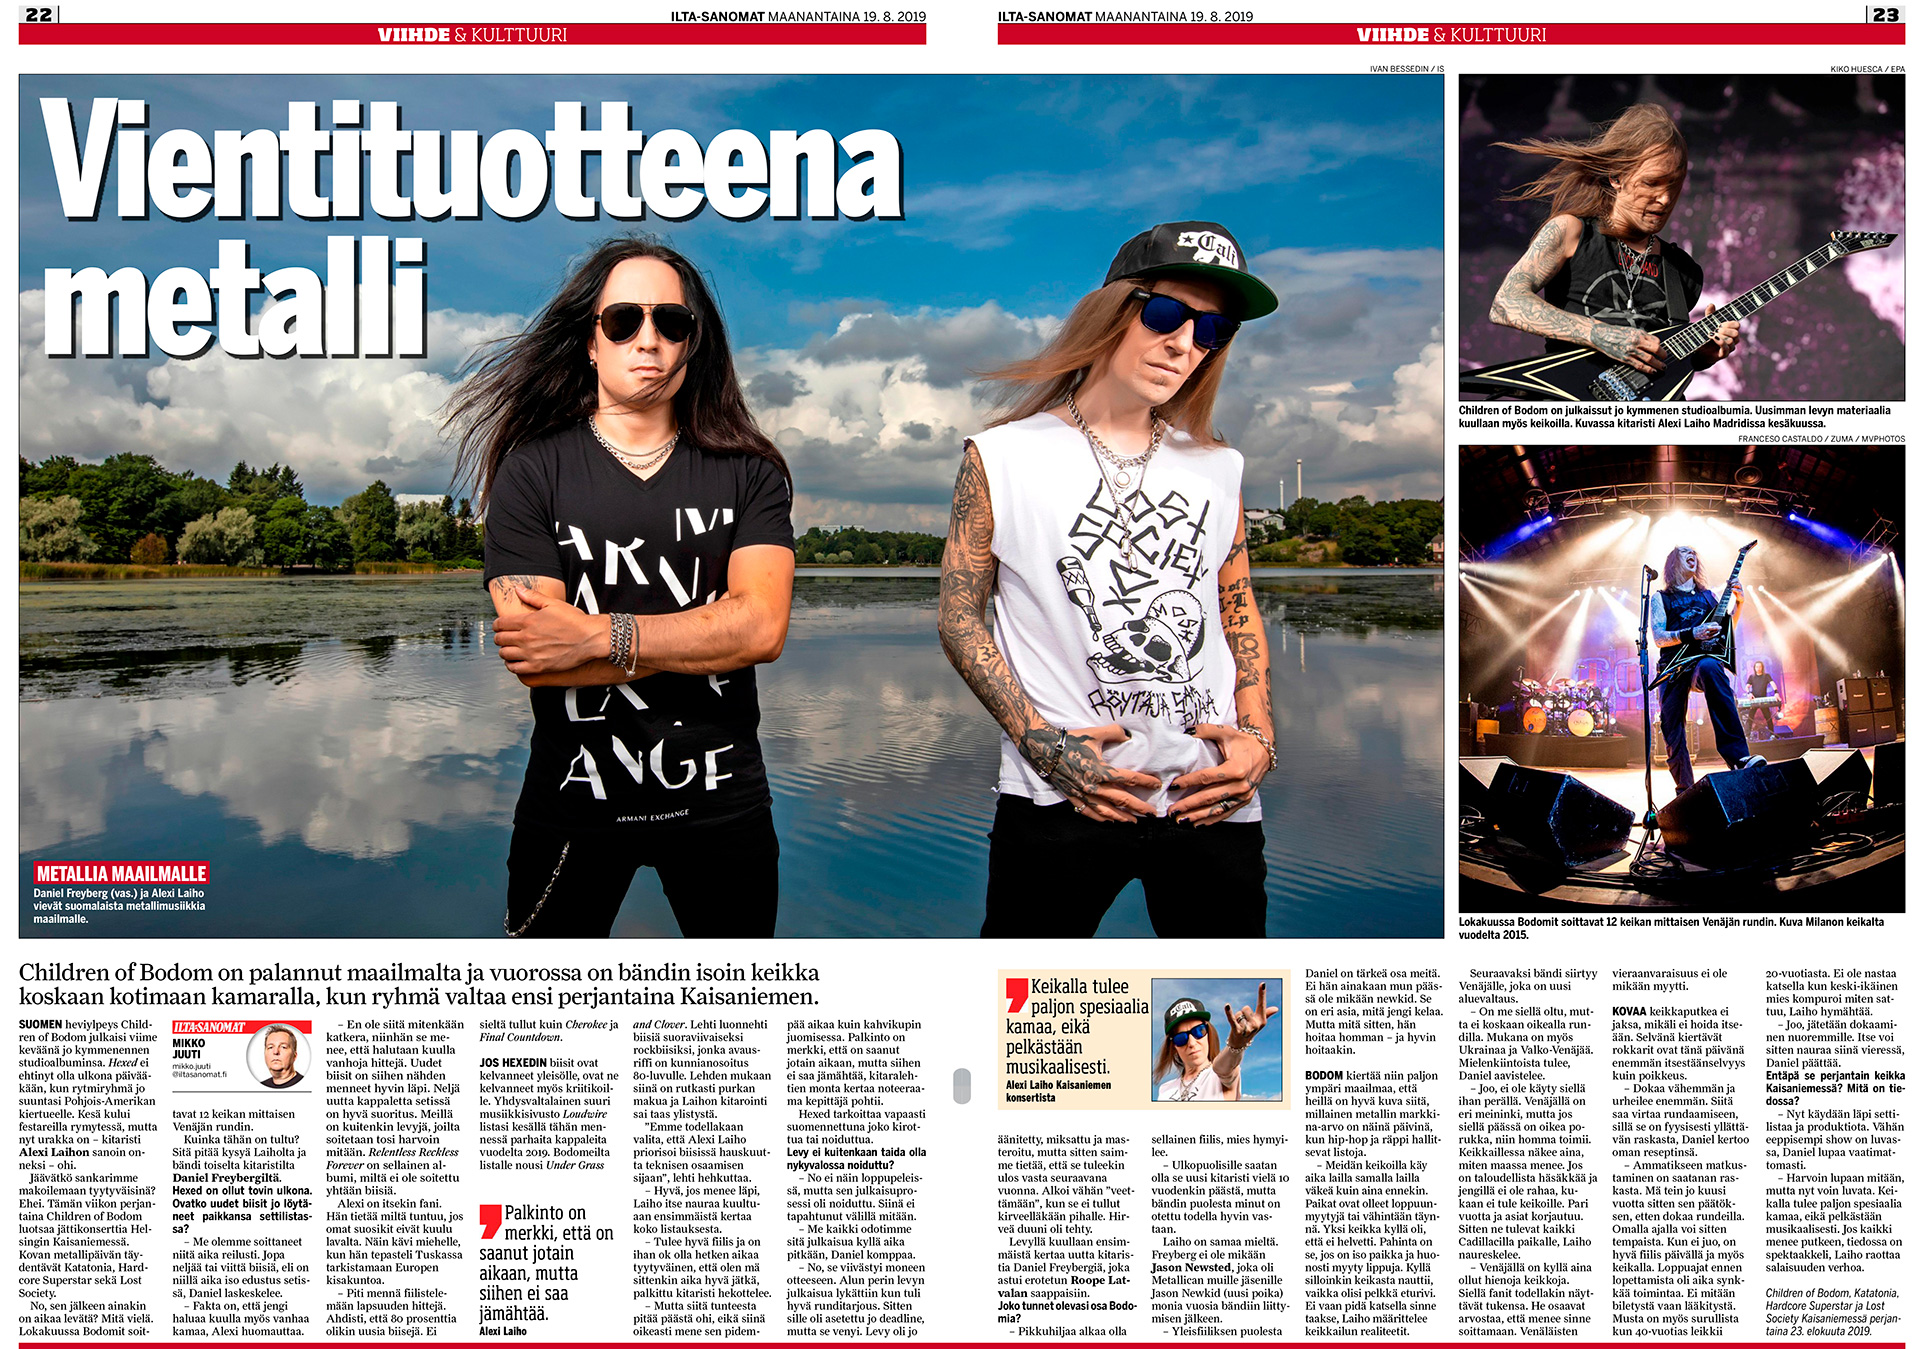 lta-Sanomat, Daniel Freyberg, Alexi Laiho, Children Of Bodom, metal band